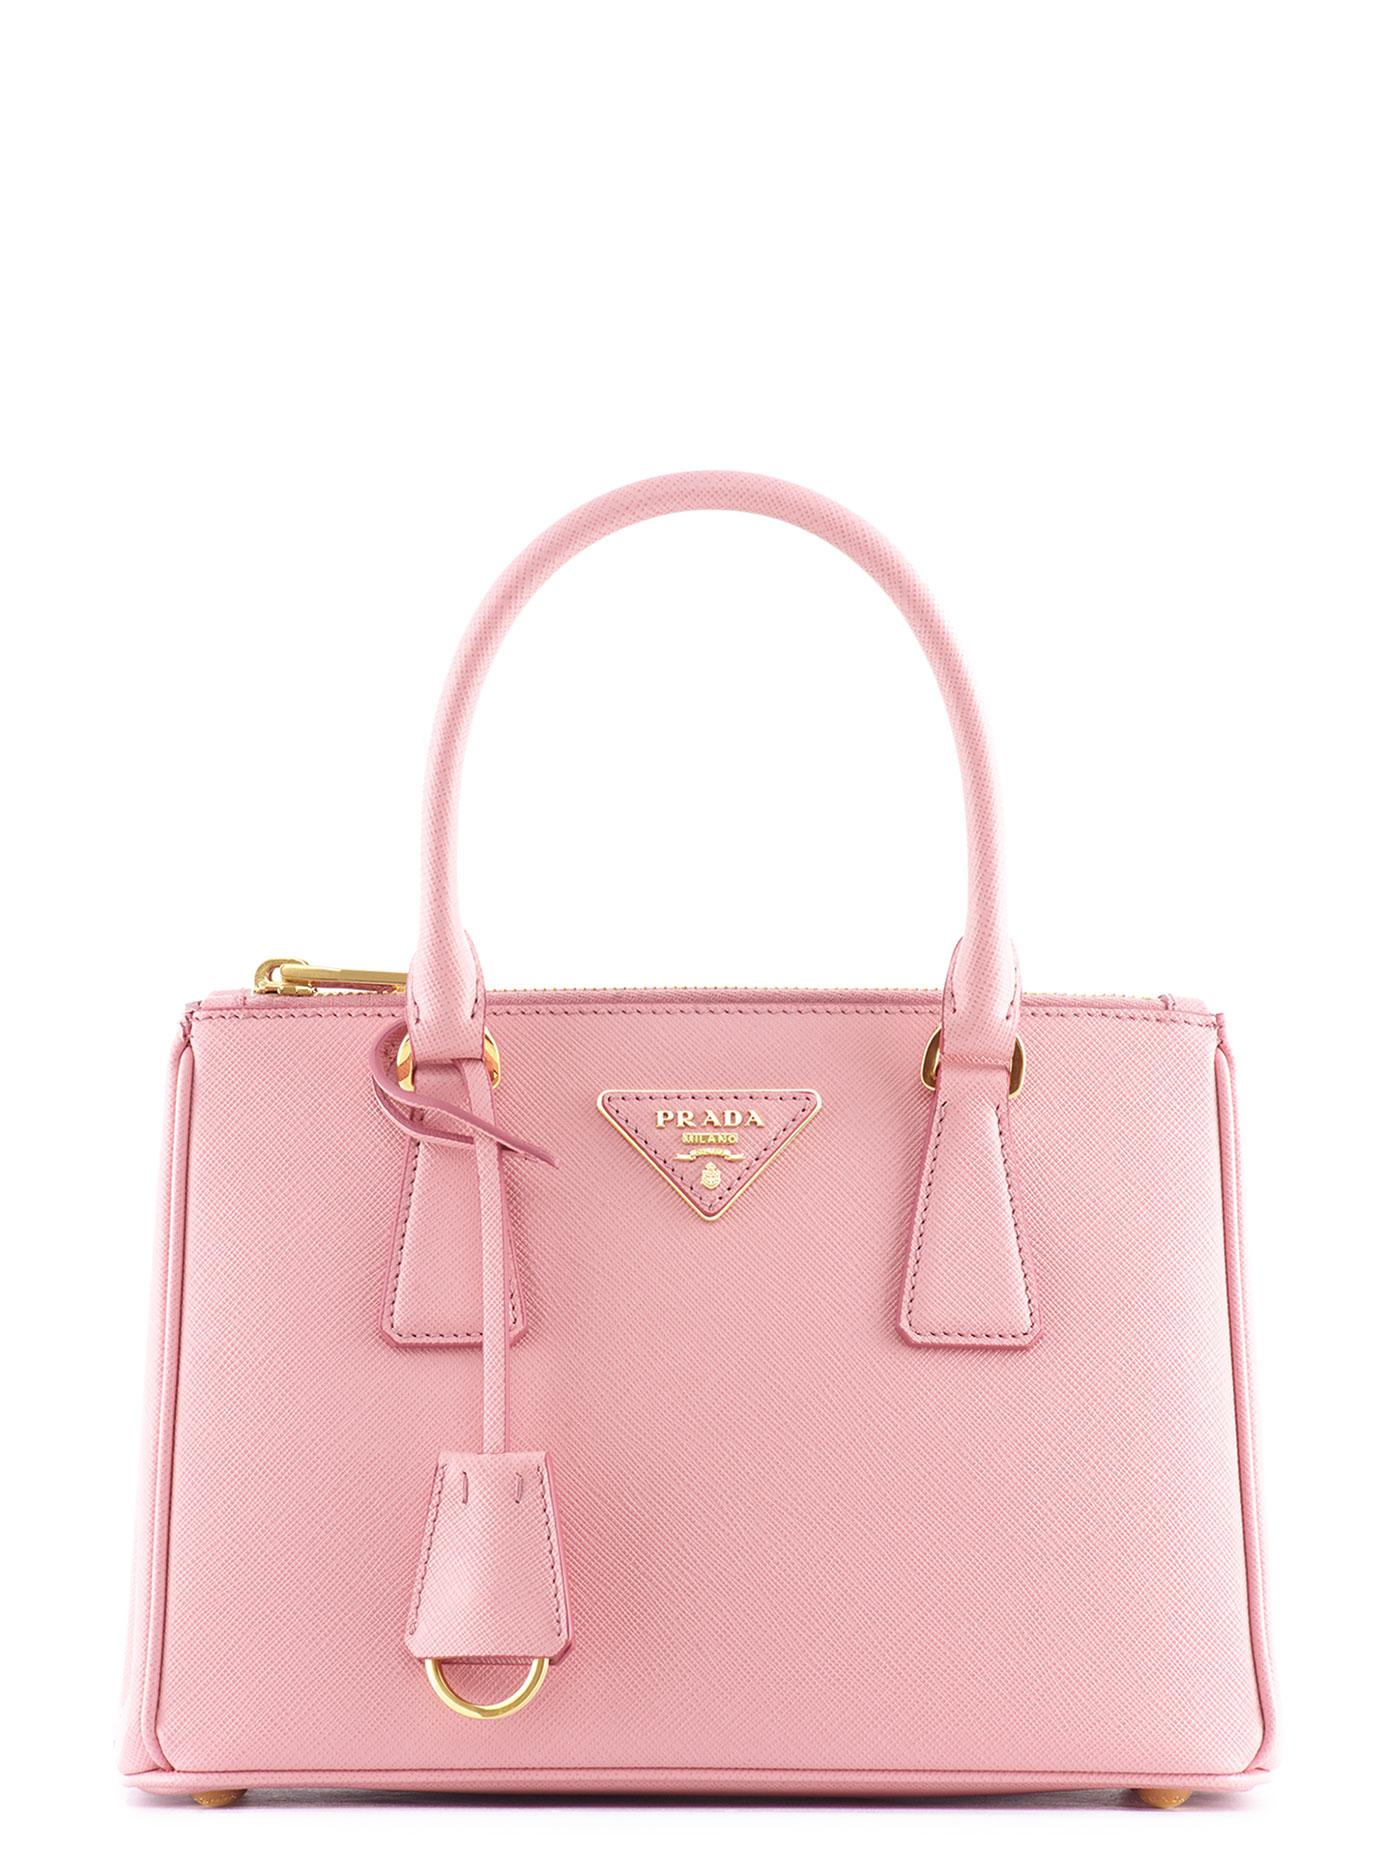 a8d6aef33e7c7f Prada Galleria Small Saffiano Leather Bag in Pink - Lyst